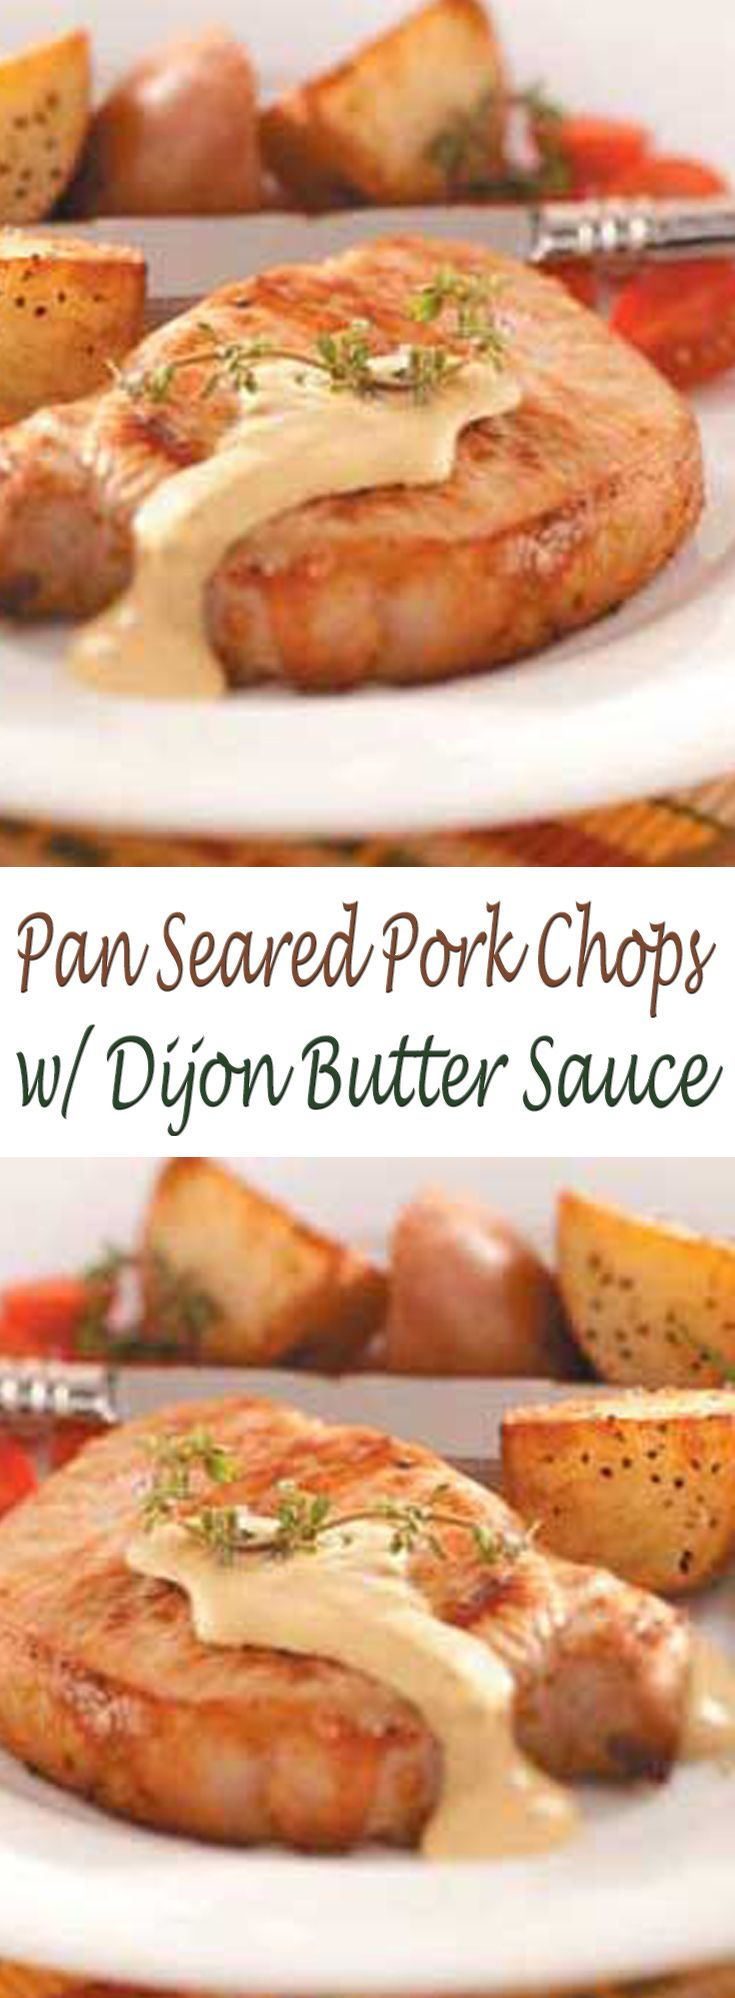 Pan Seared Pork Chops with Dijon Butter Sauce. #CompleteRecipes.com #recipe #recipes #food #foodgasm #cleaneating #healthyfood #healthy #healthyrecipes